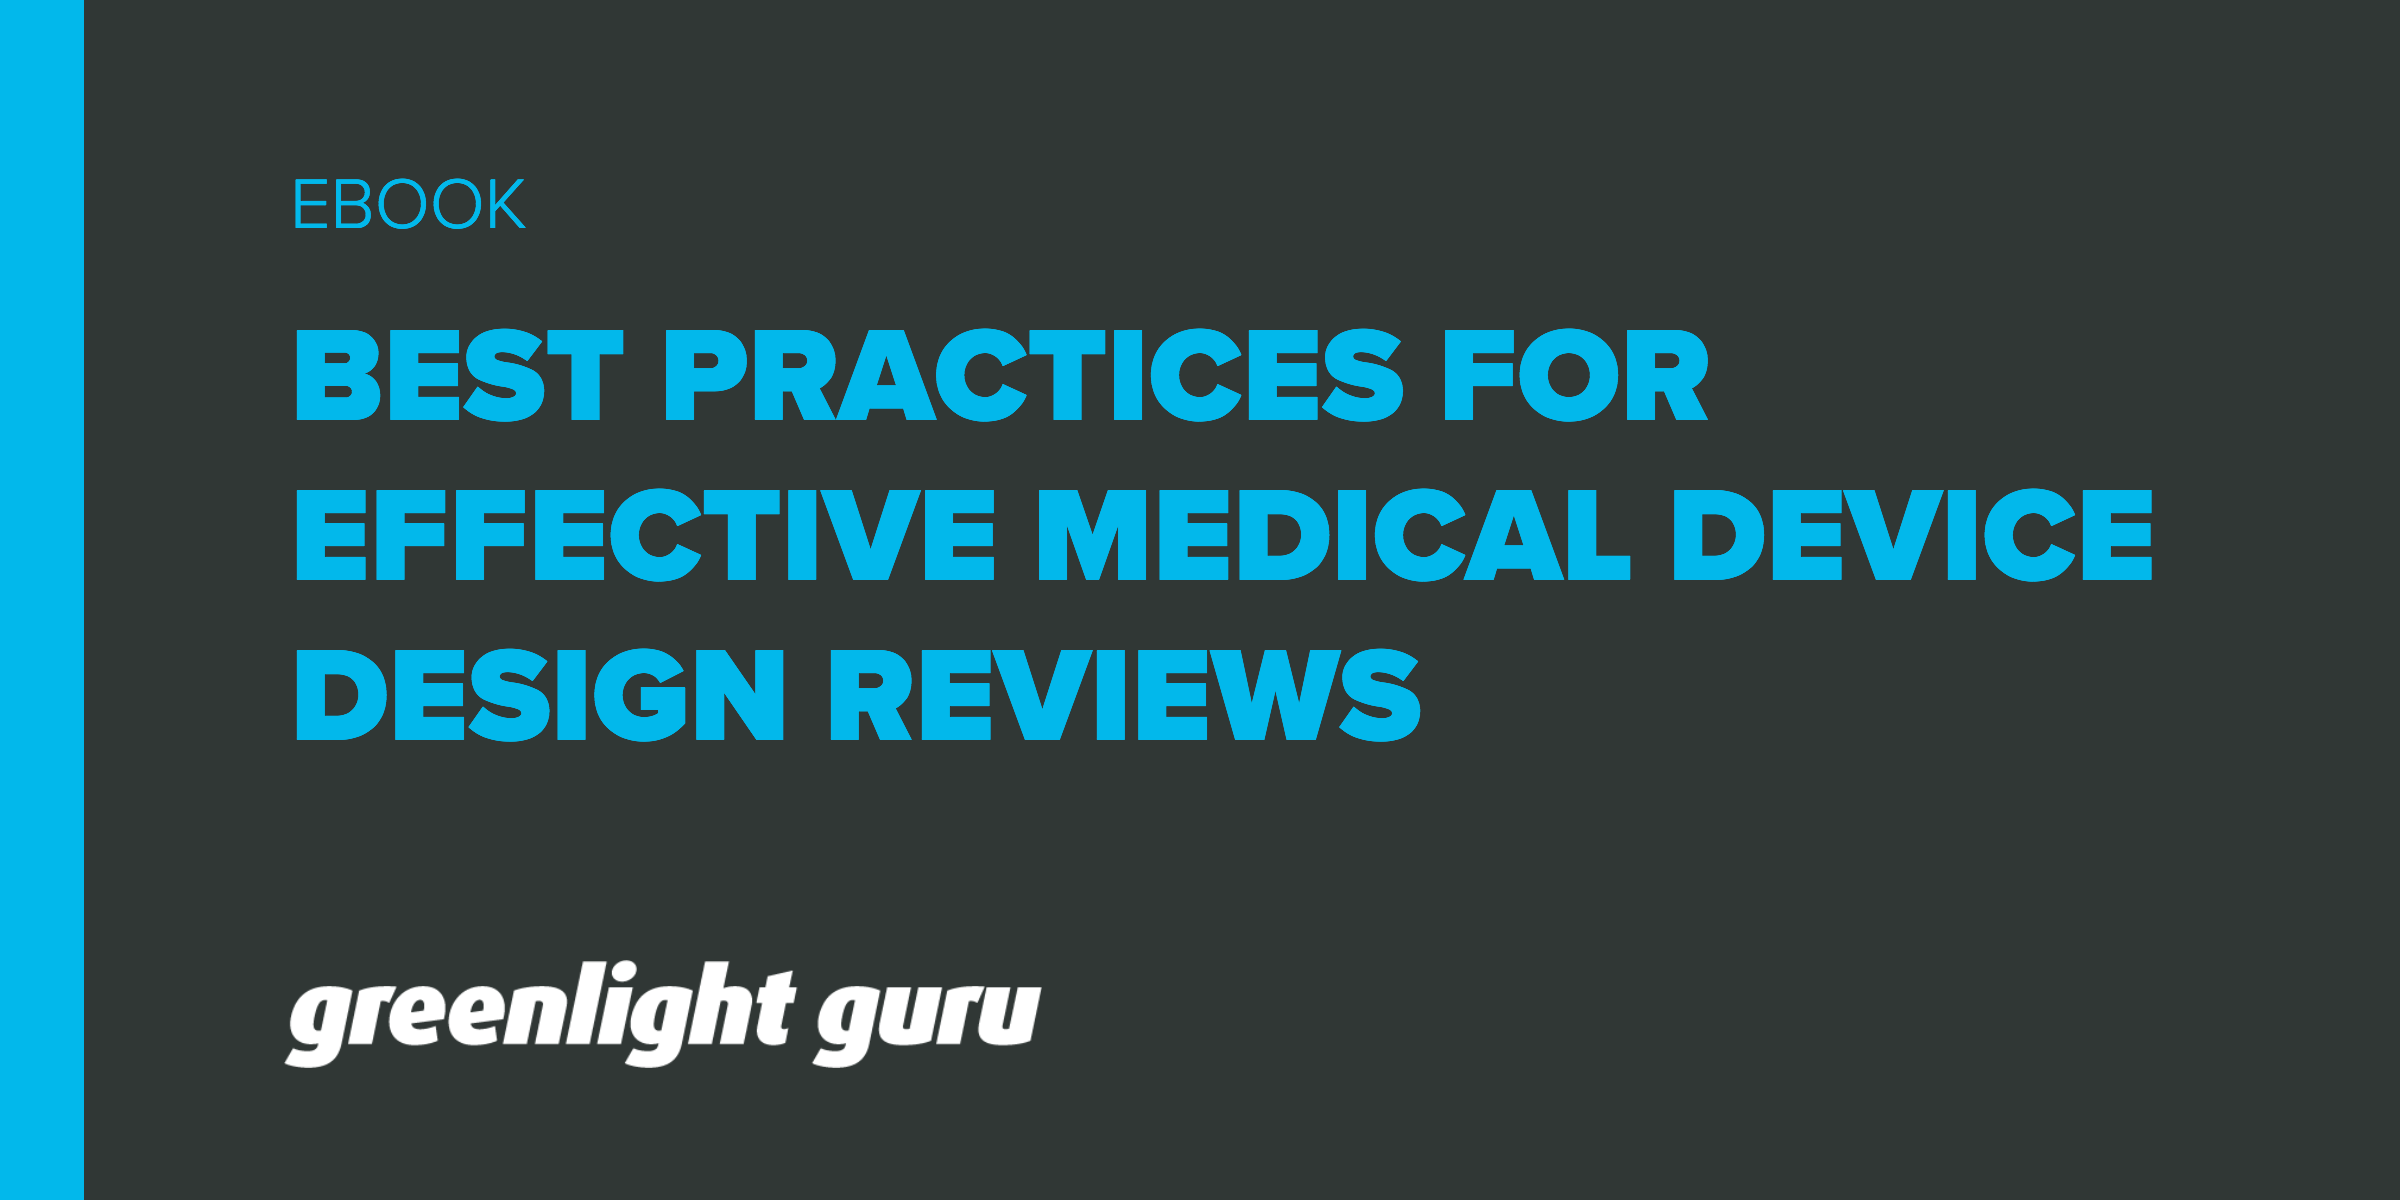 Design Reviews Best Practices for Medical Devices